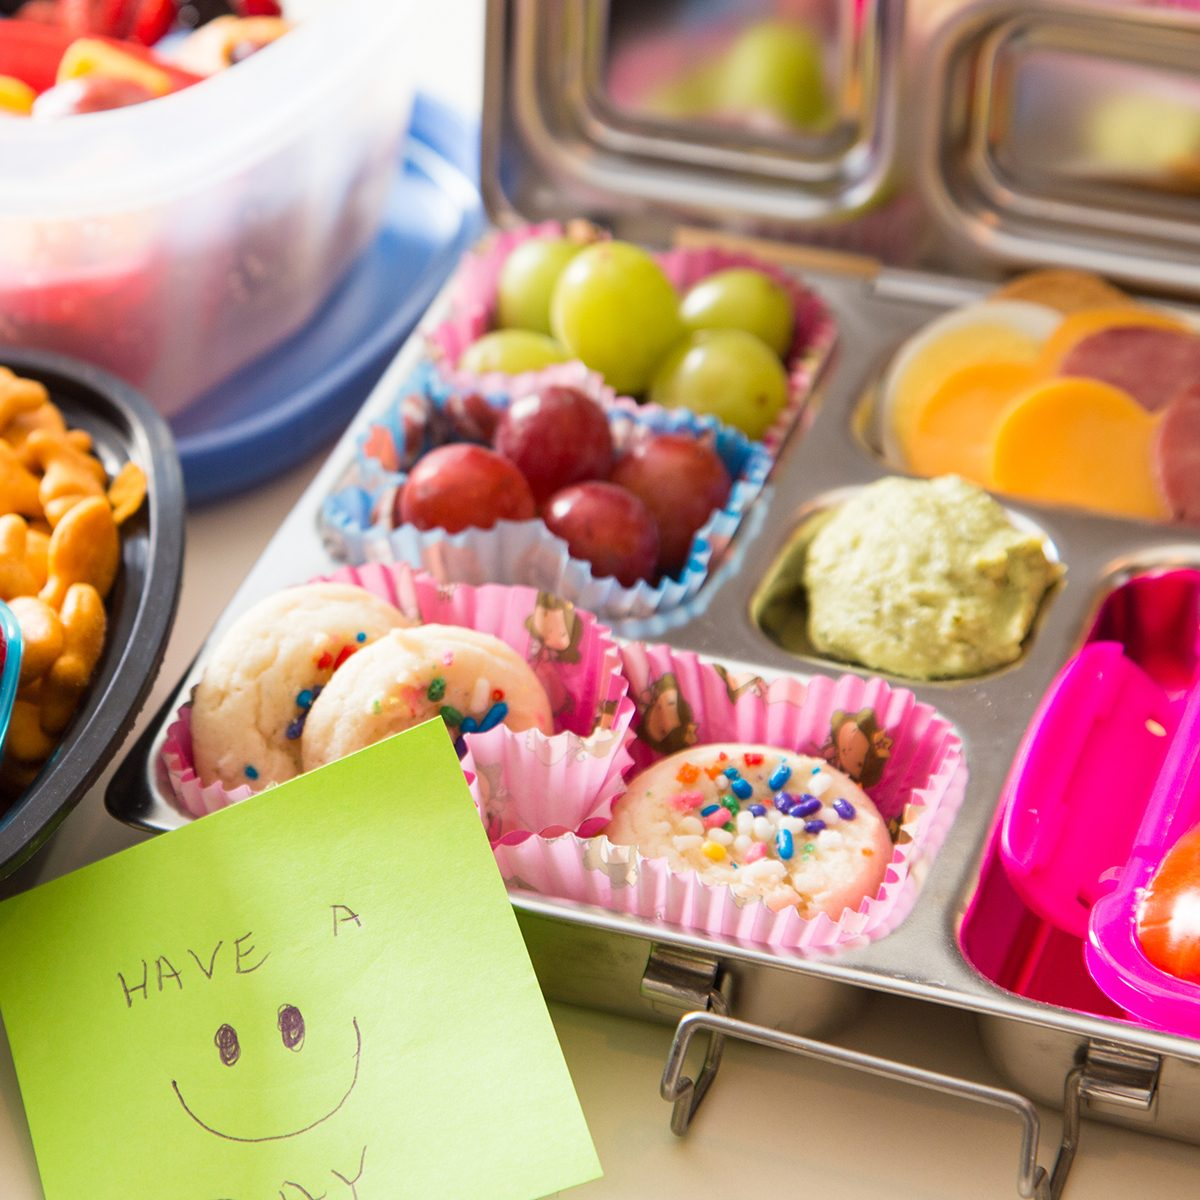 Mom packs a happy note of encouragement with a colorful Bento box lunch packed with healthy fruits, veggies and snacks